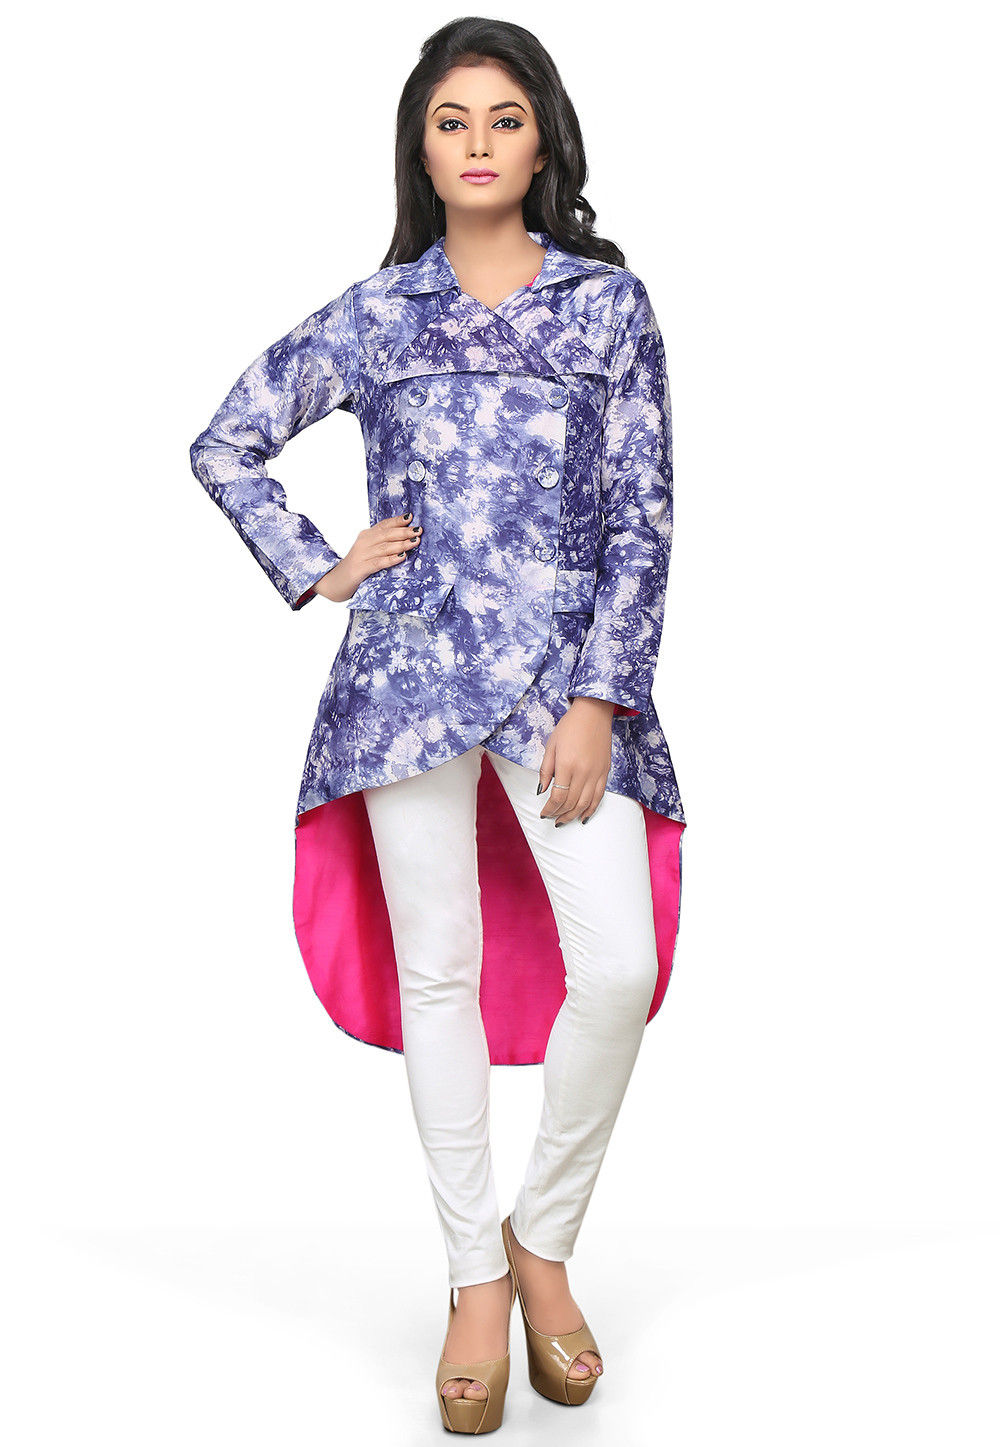 Asymmetric Chanderi Silk Jacket in Blue and White